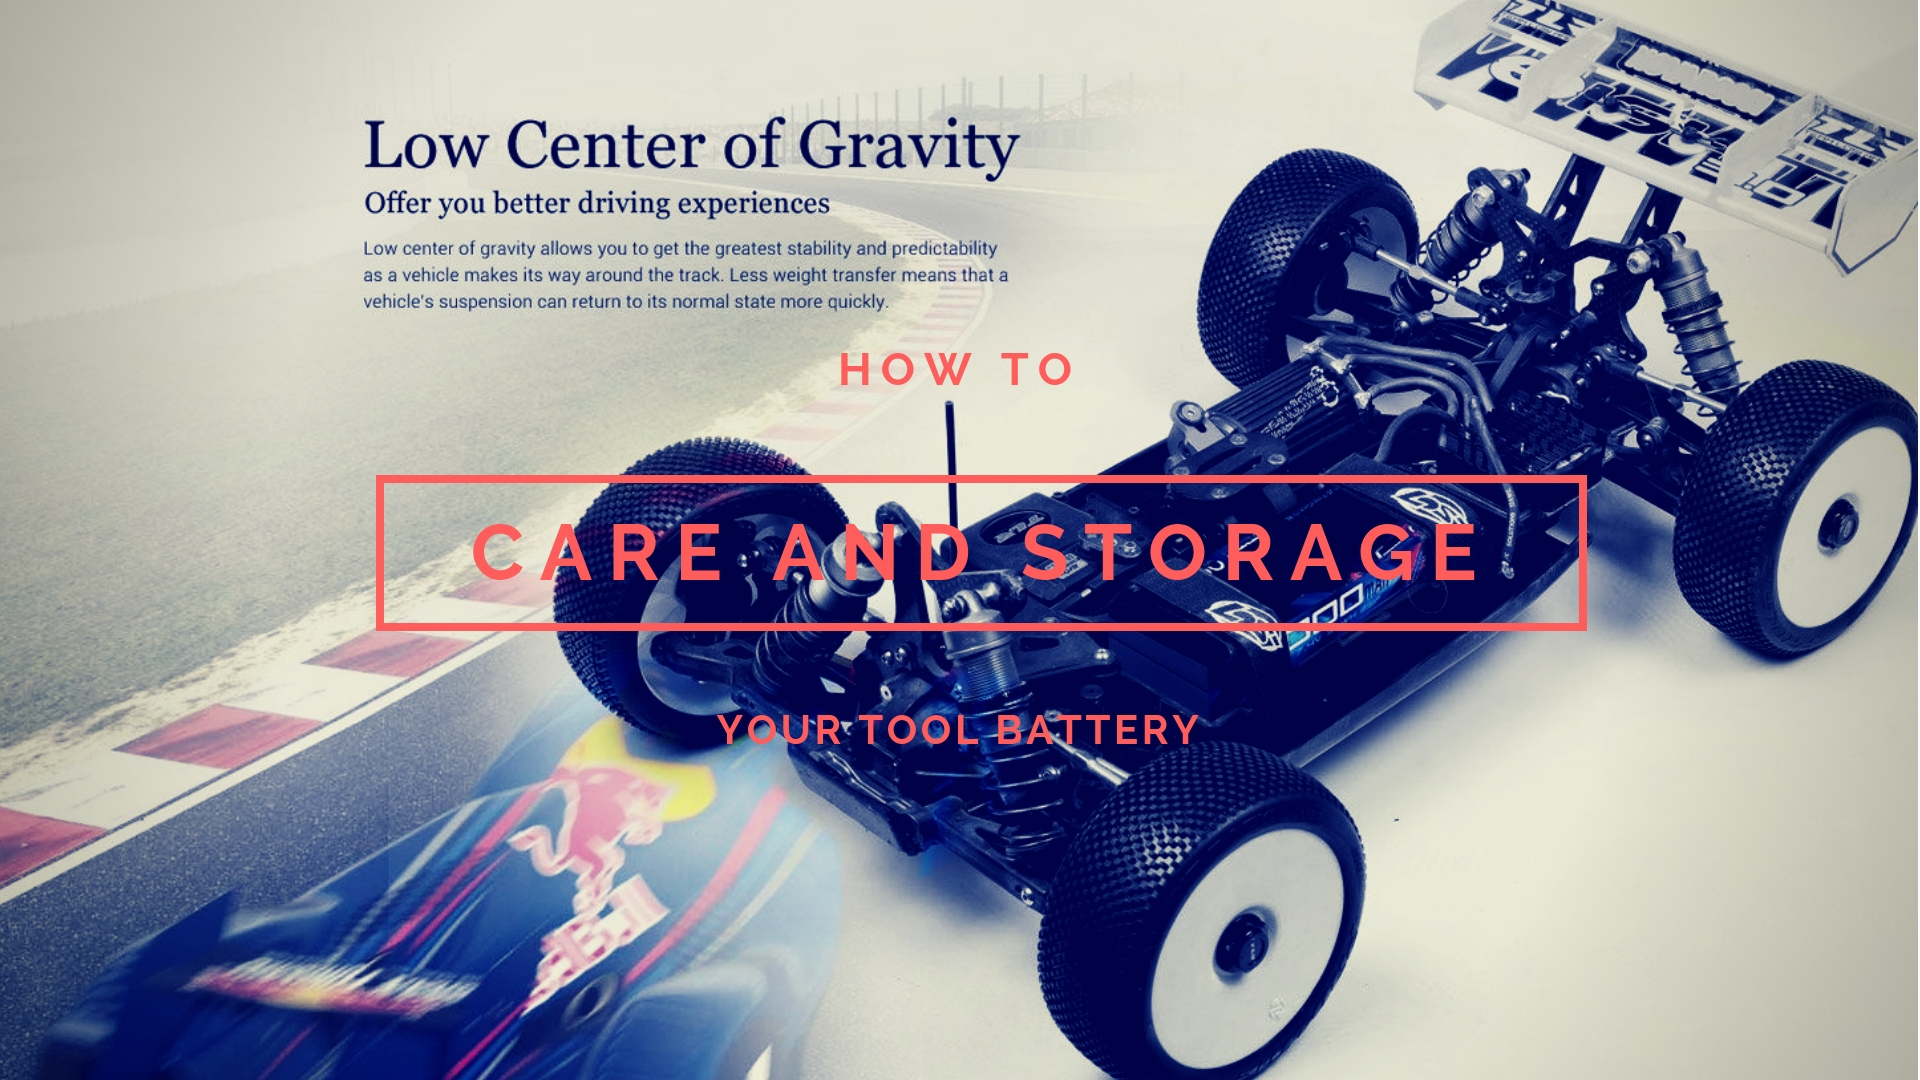 How to Care and Storage Your Tool Battery?